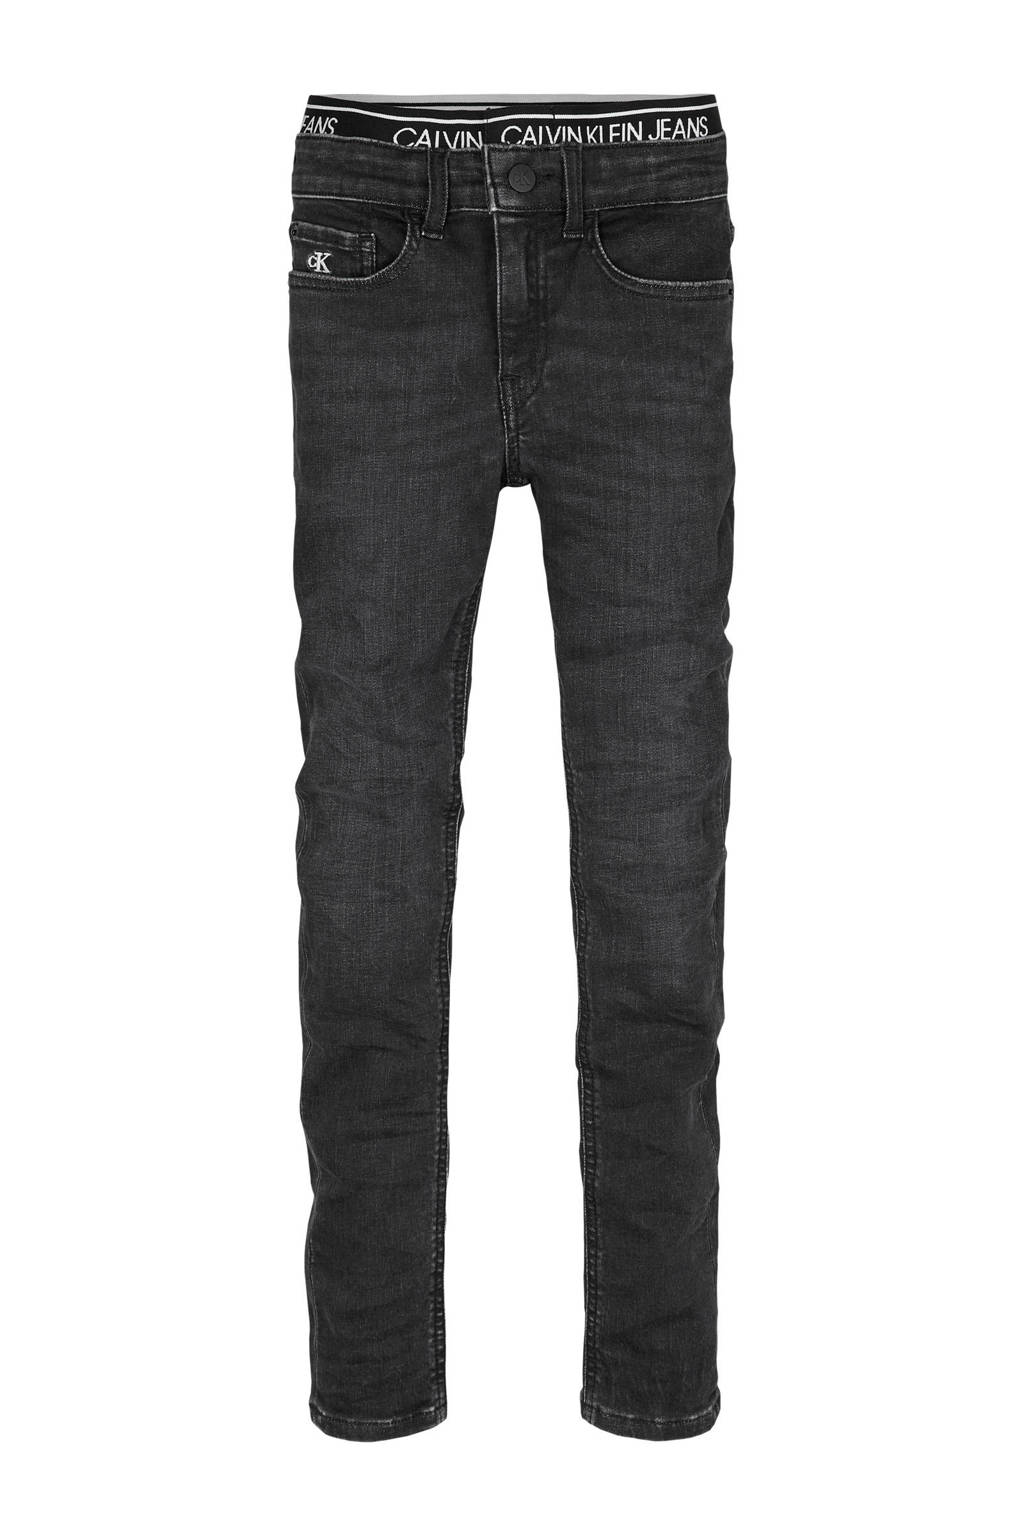 CALVIN KLEIN JEANS super skinny jeans met borduursels dark denim, Dark denim